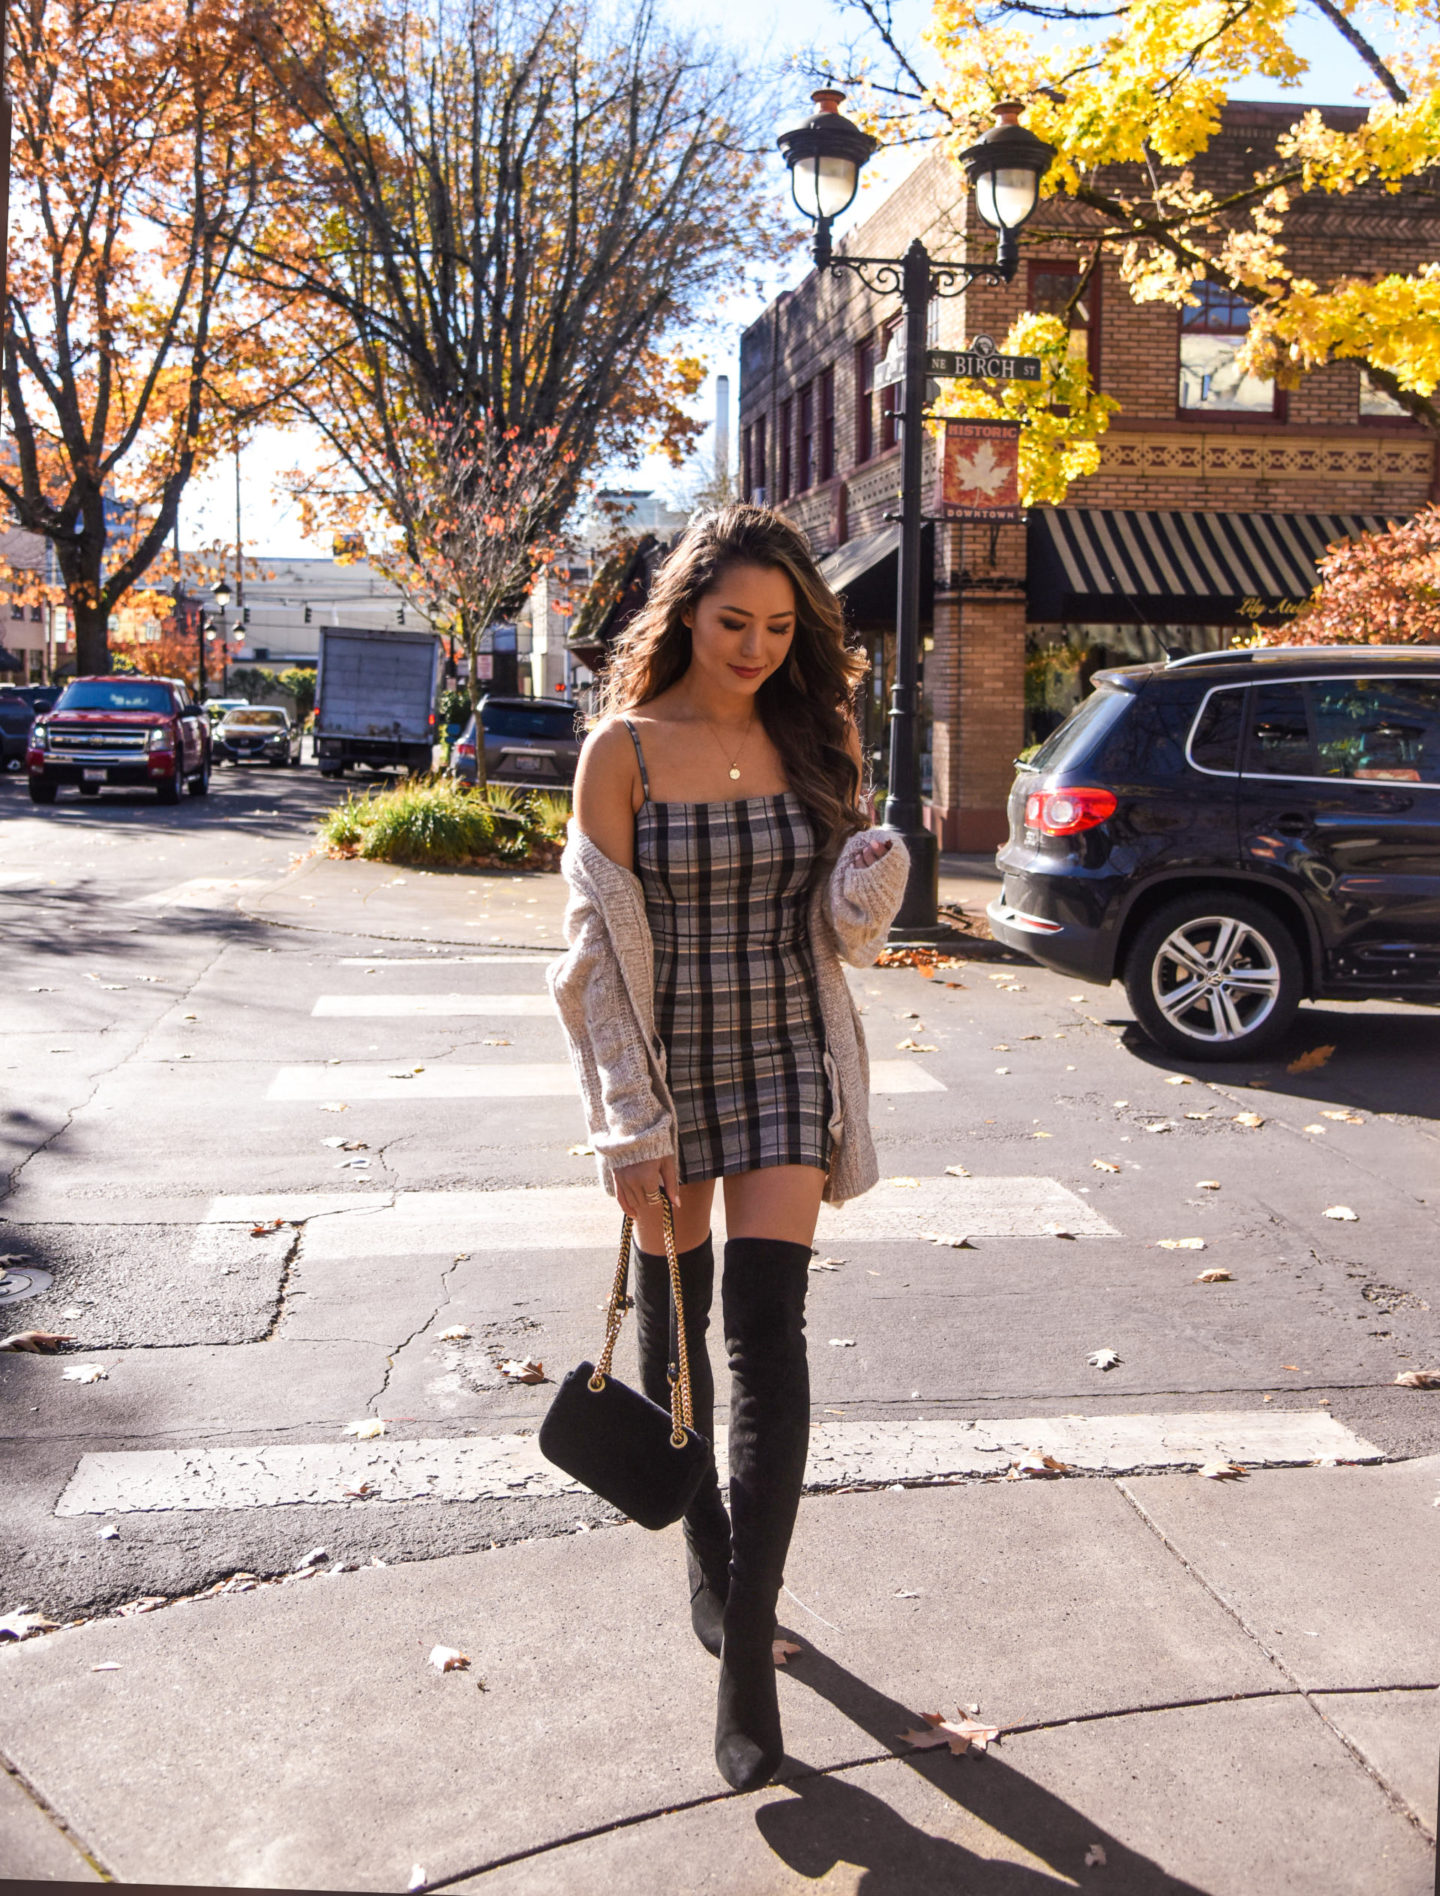 plaid dress, fall outfit, oregon, camas, washington, abercrombie, cardigan, tiger mist, otk boots, gucci bag